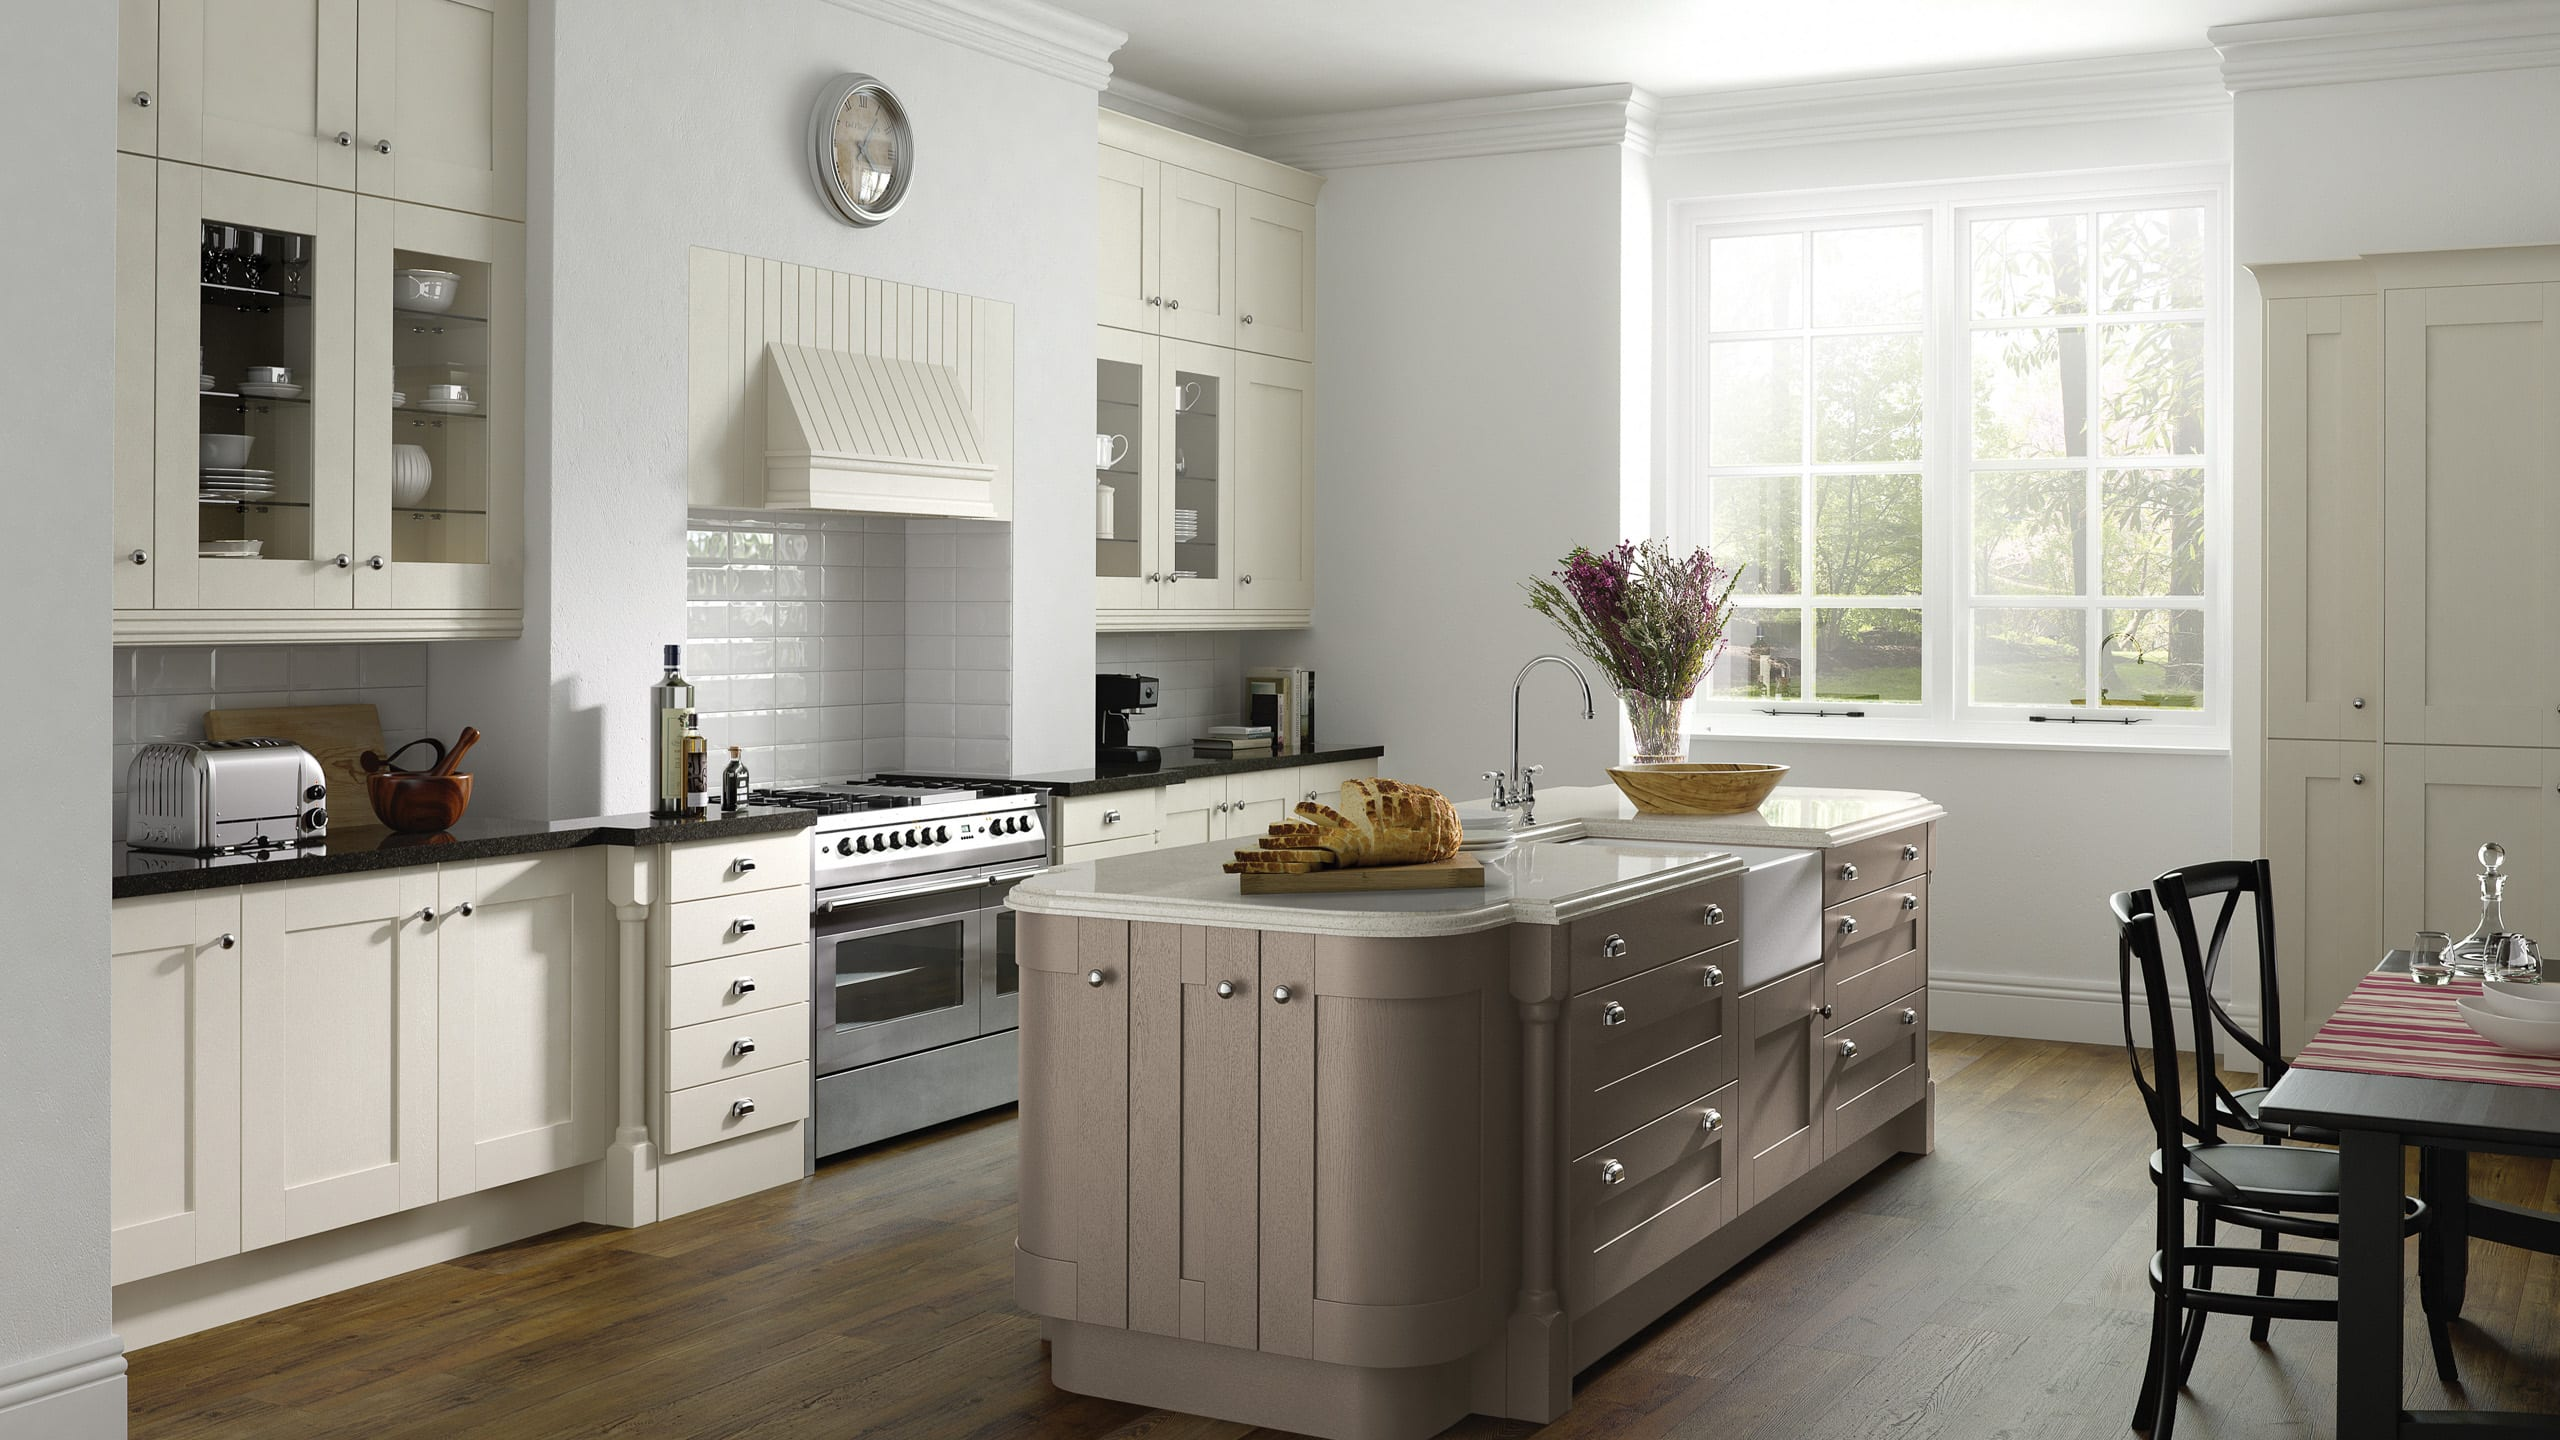 Painted Ivory and Hickory Wood Shaker - kitchen